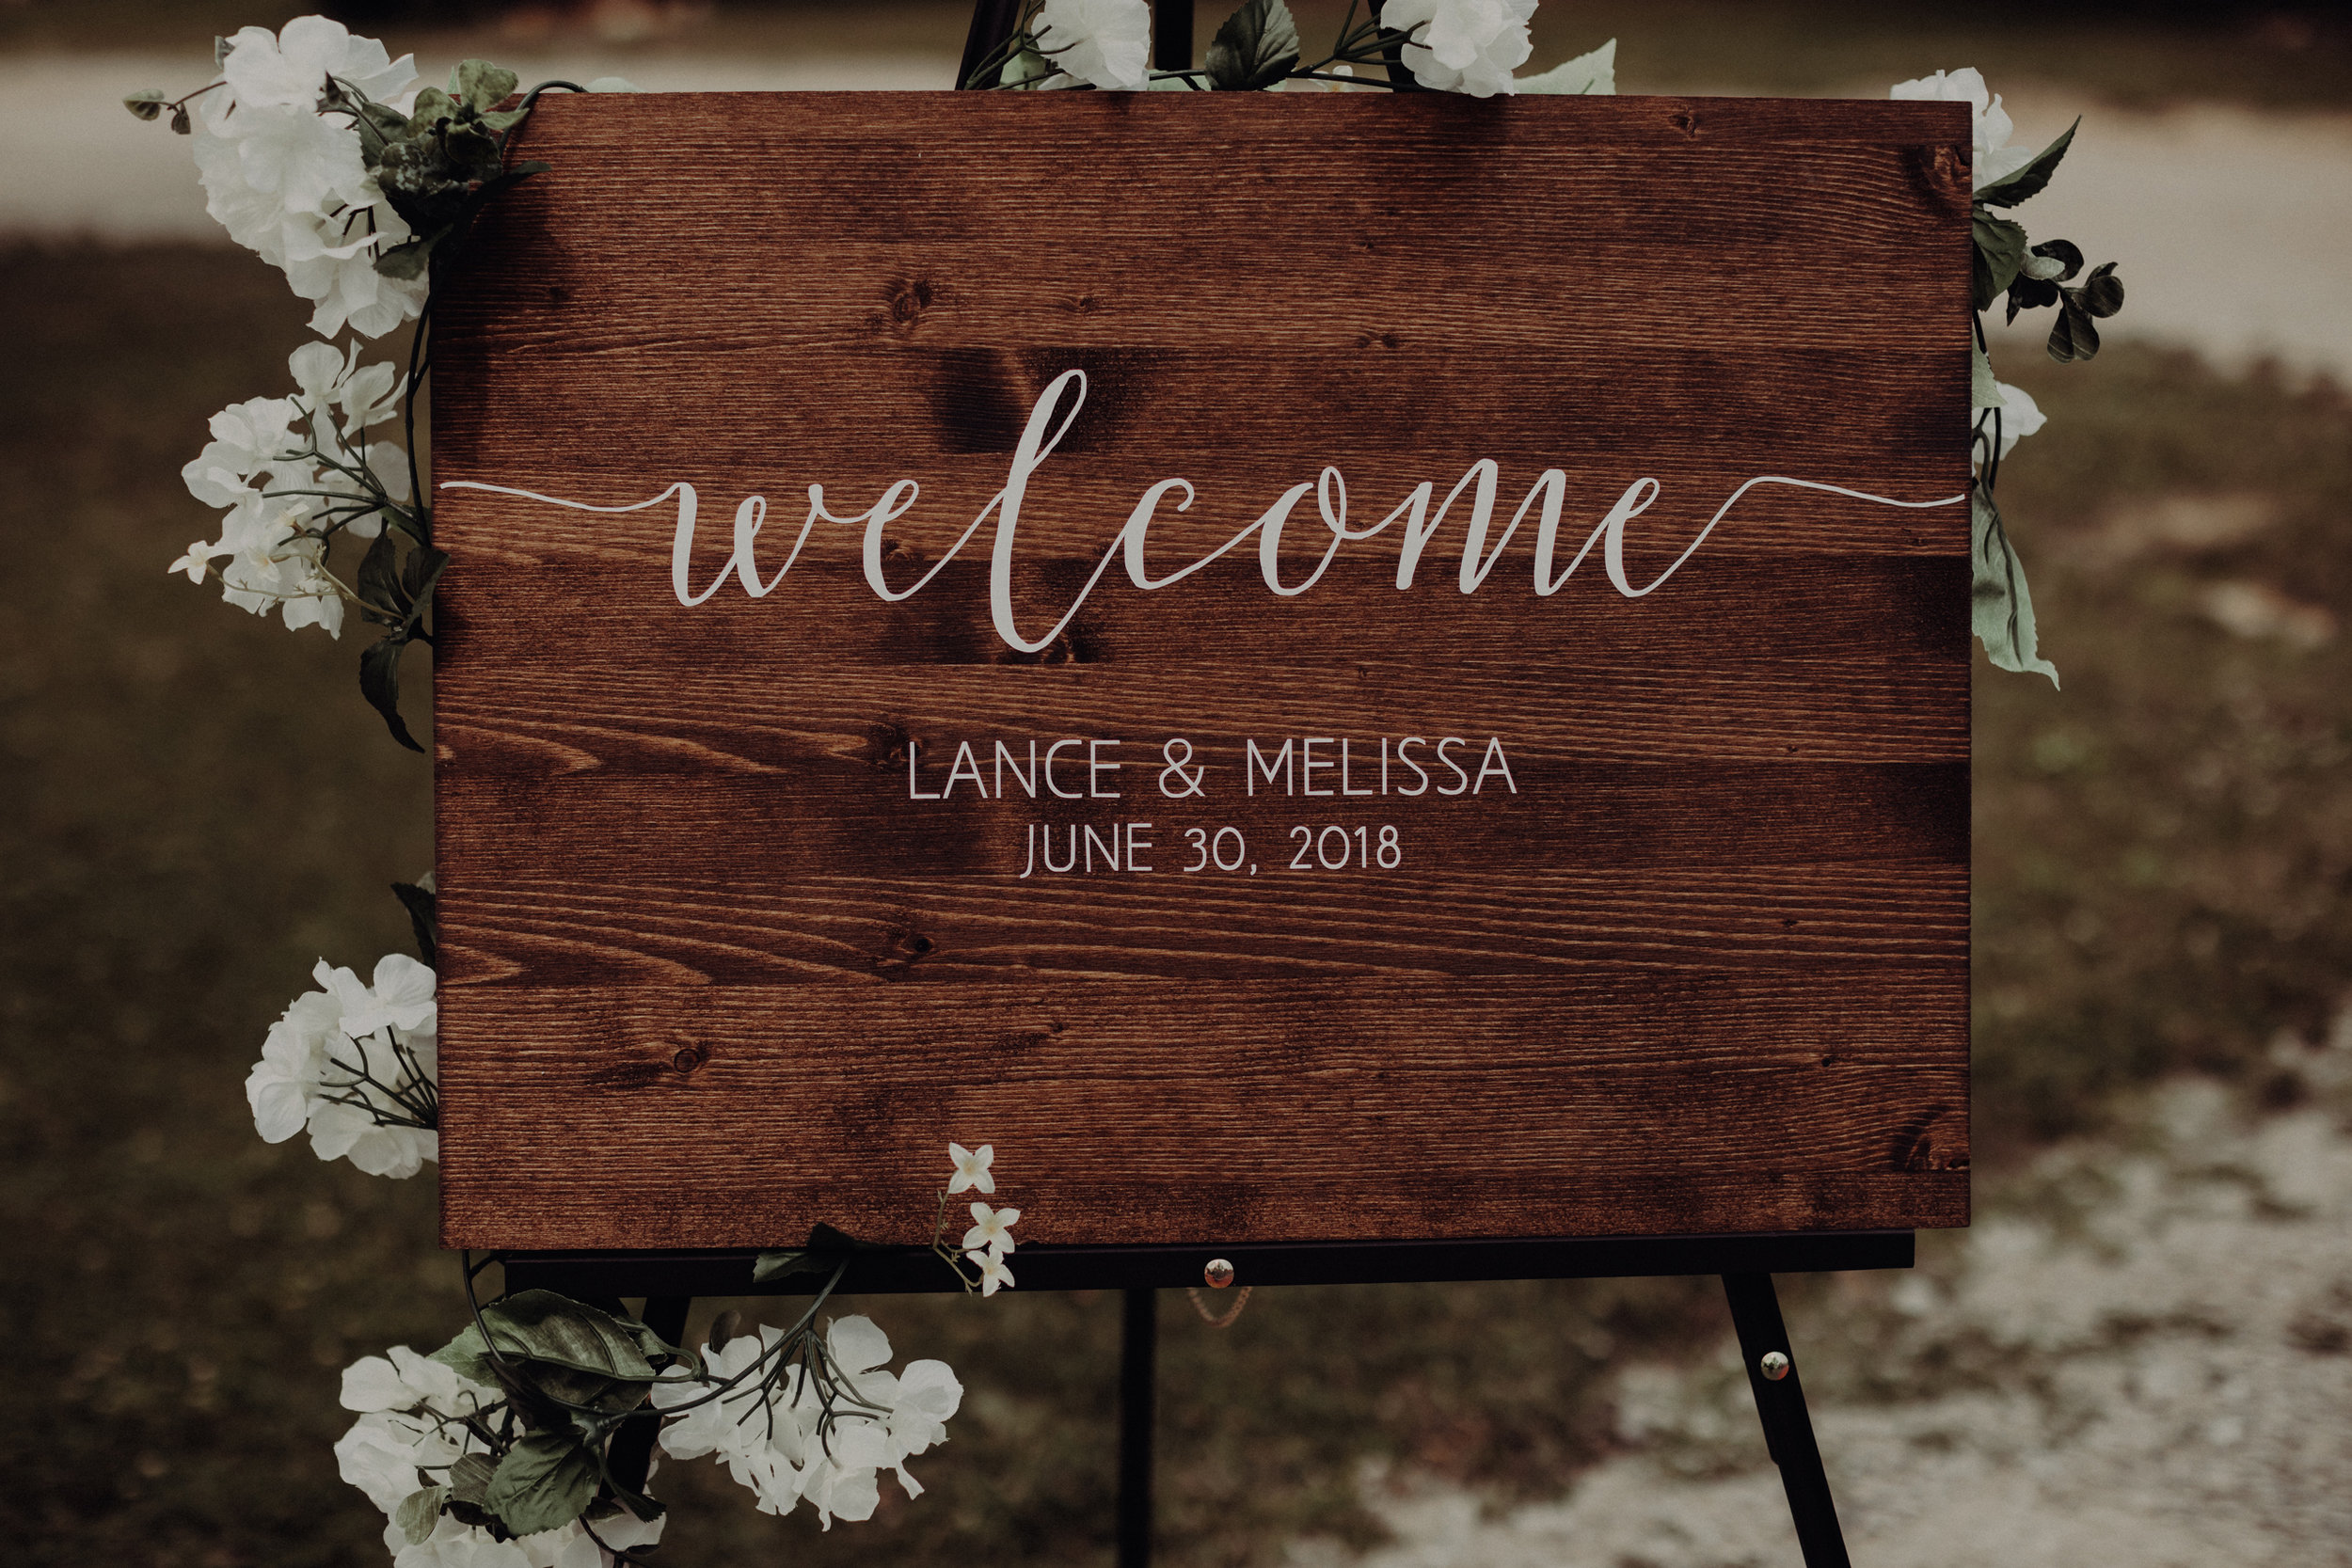 (0642) Melissa + Lance (Wedding).jpg